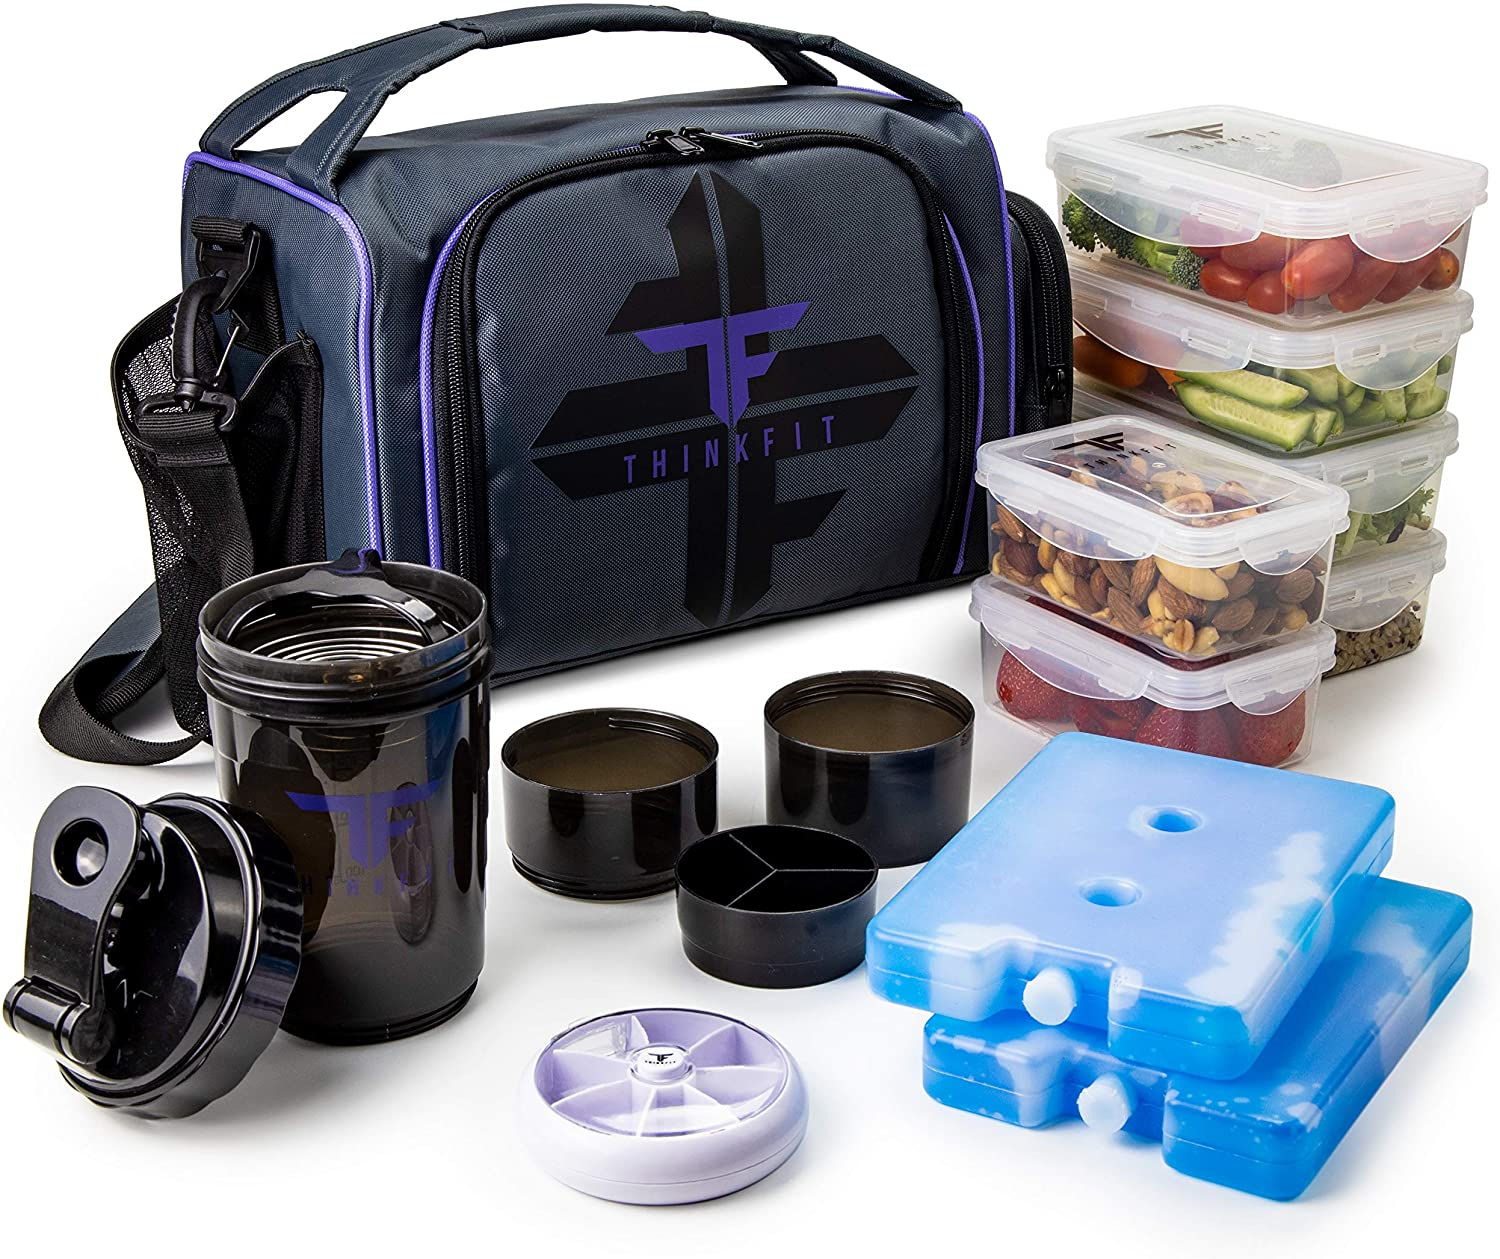 ThinkFit Insulated Max 78% OFF Meal Prep Lunch Box 6 Food Portion Department store Contr with